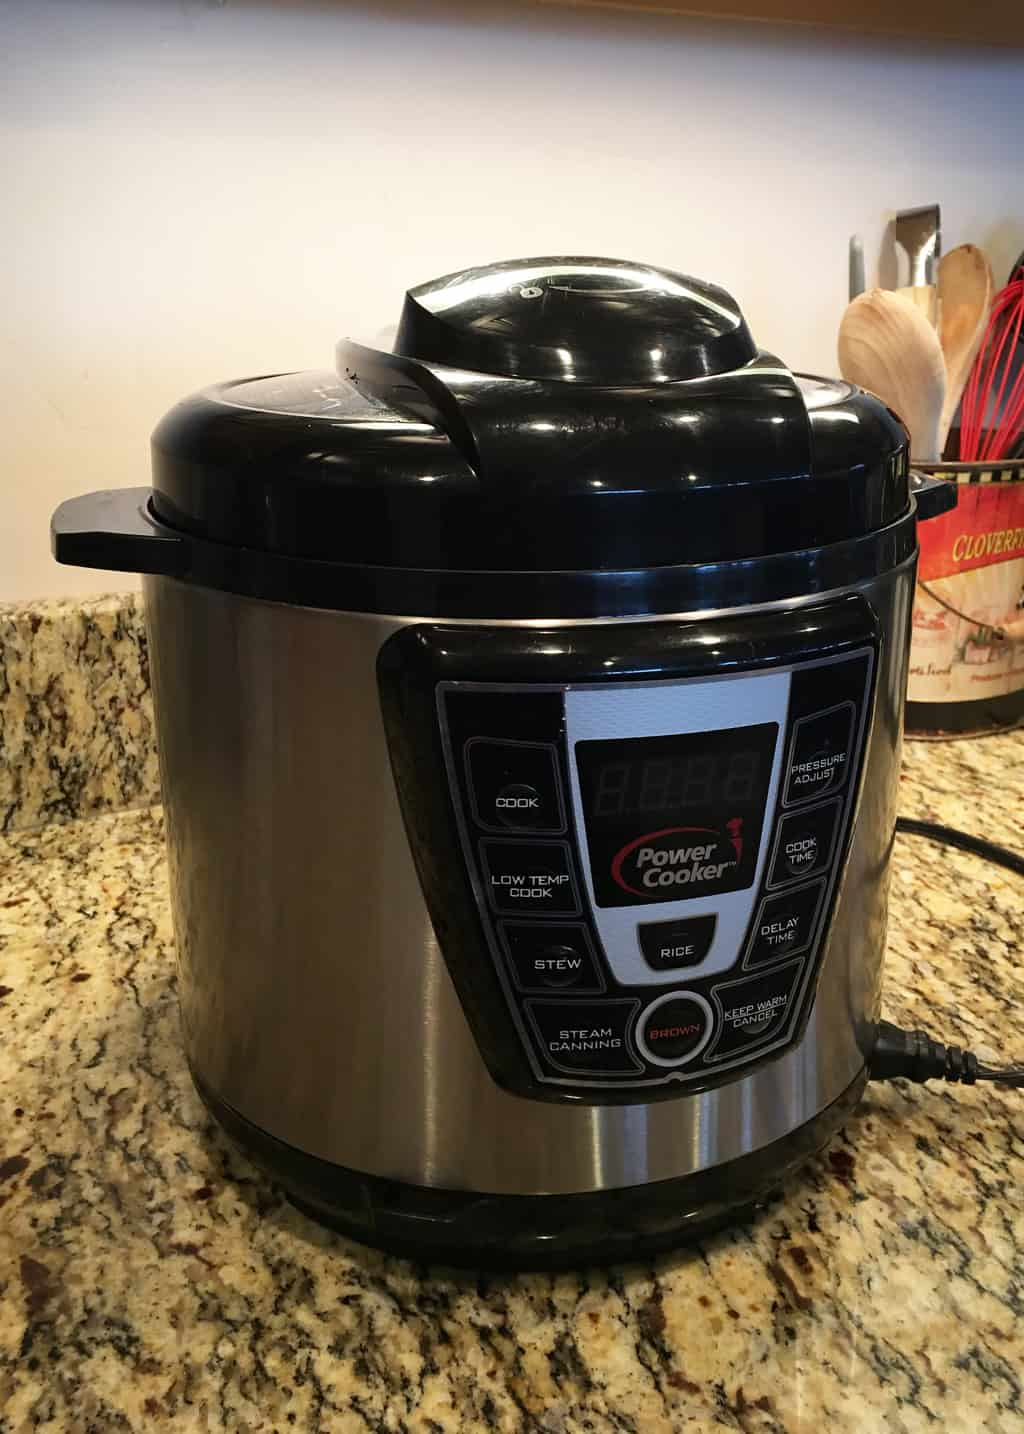 photo of a pressure cooker on a kitchen counter